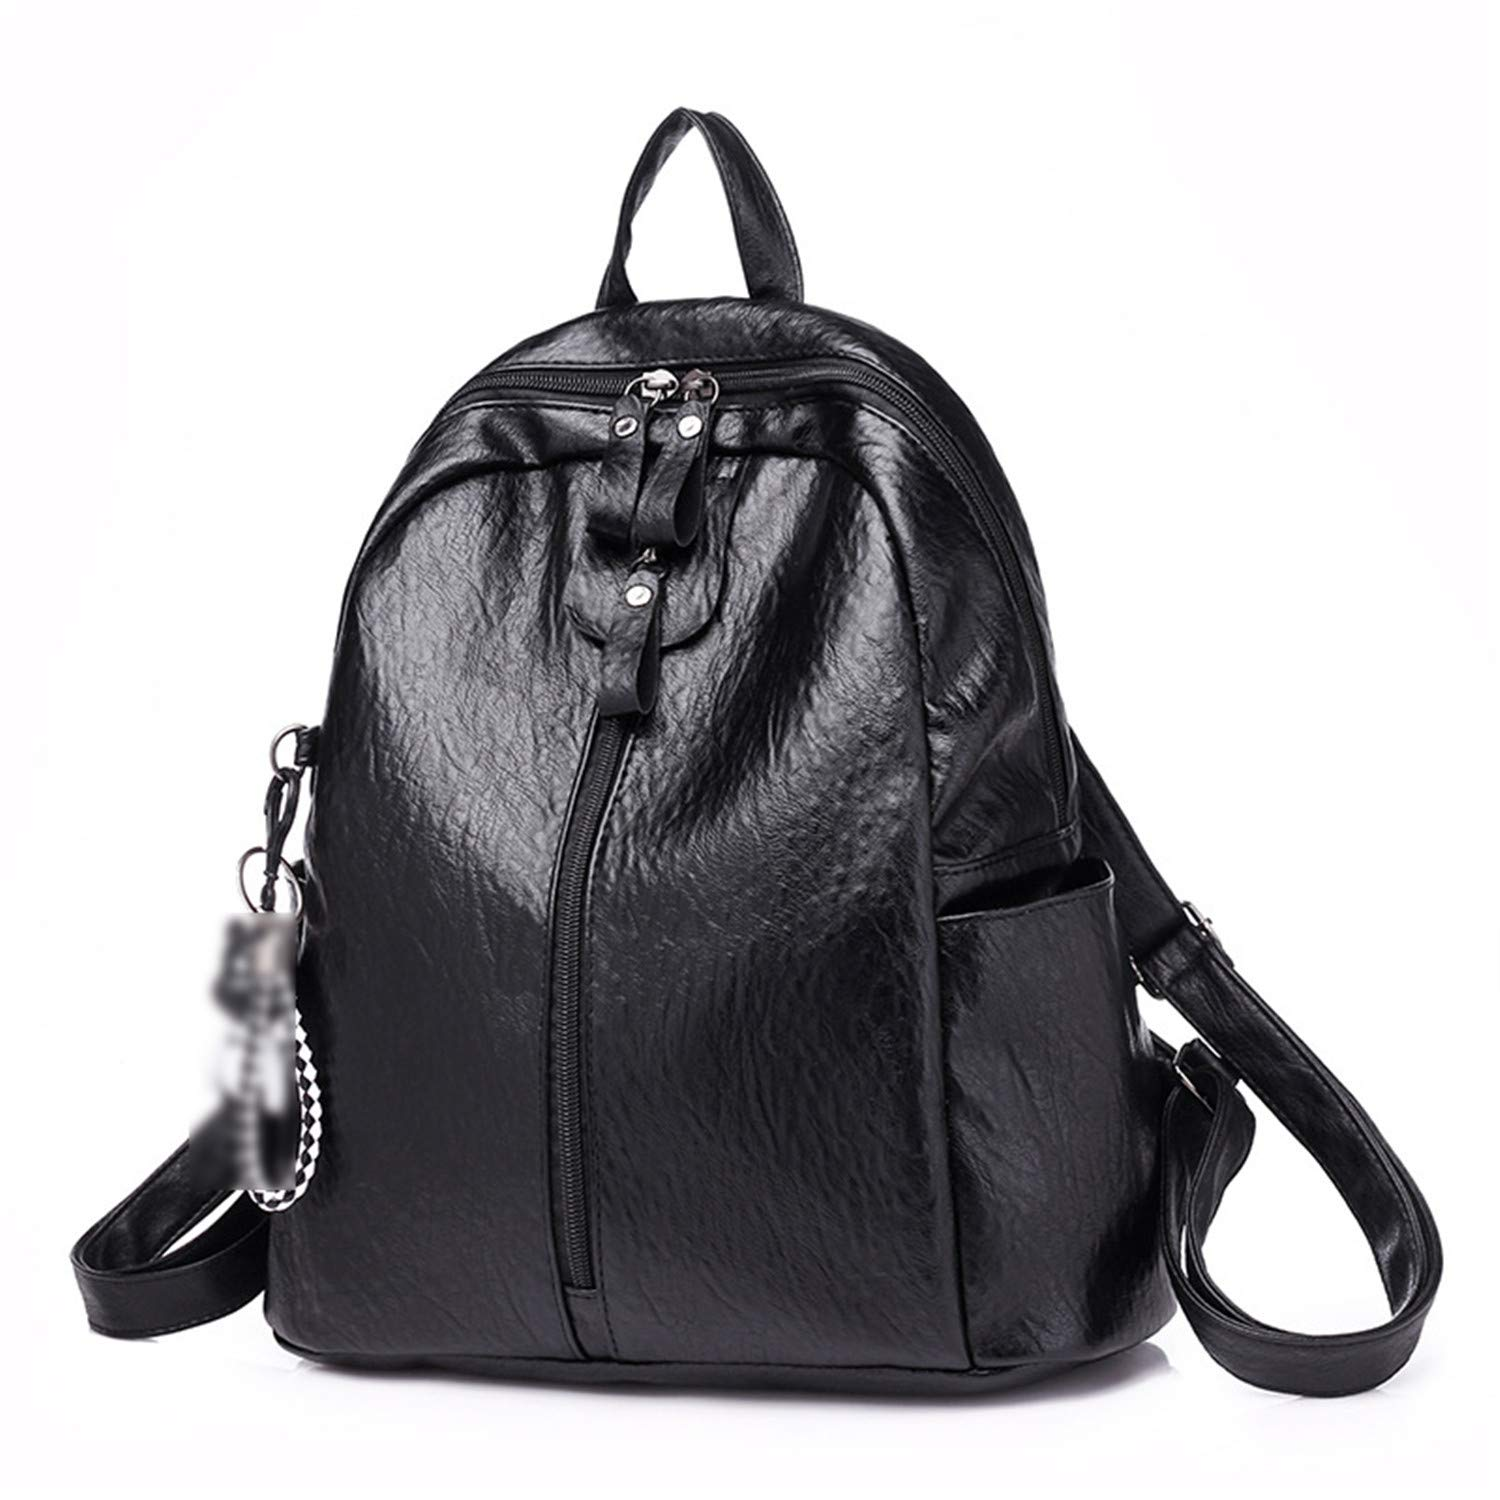 657de34b41 Amazon.com  Hangton Women Pu Leather Fashion Bagpack Women Girl Leather  Backpack Travel Rucksack School Bag For Teenagers Design Packback Black Bag   Shoes